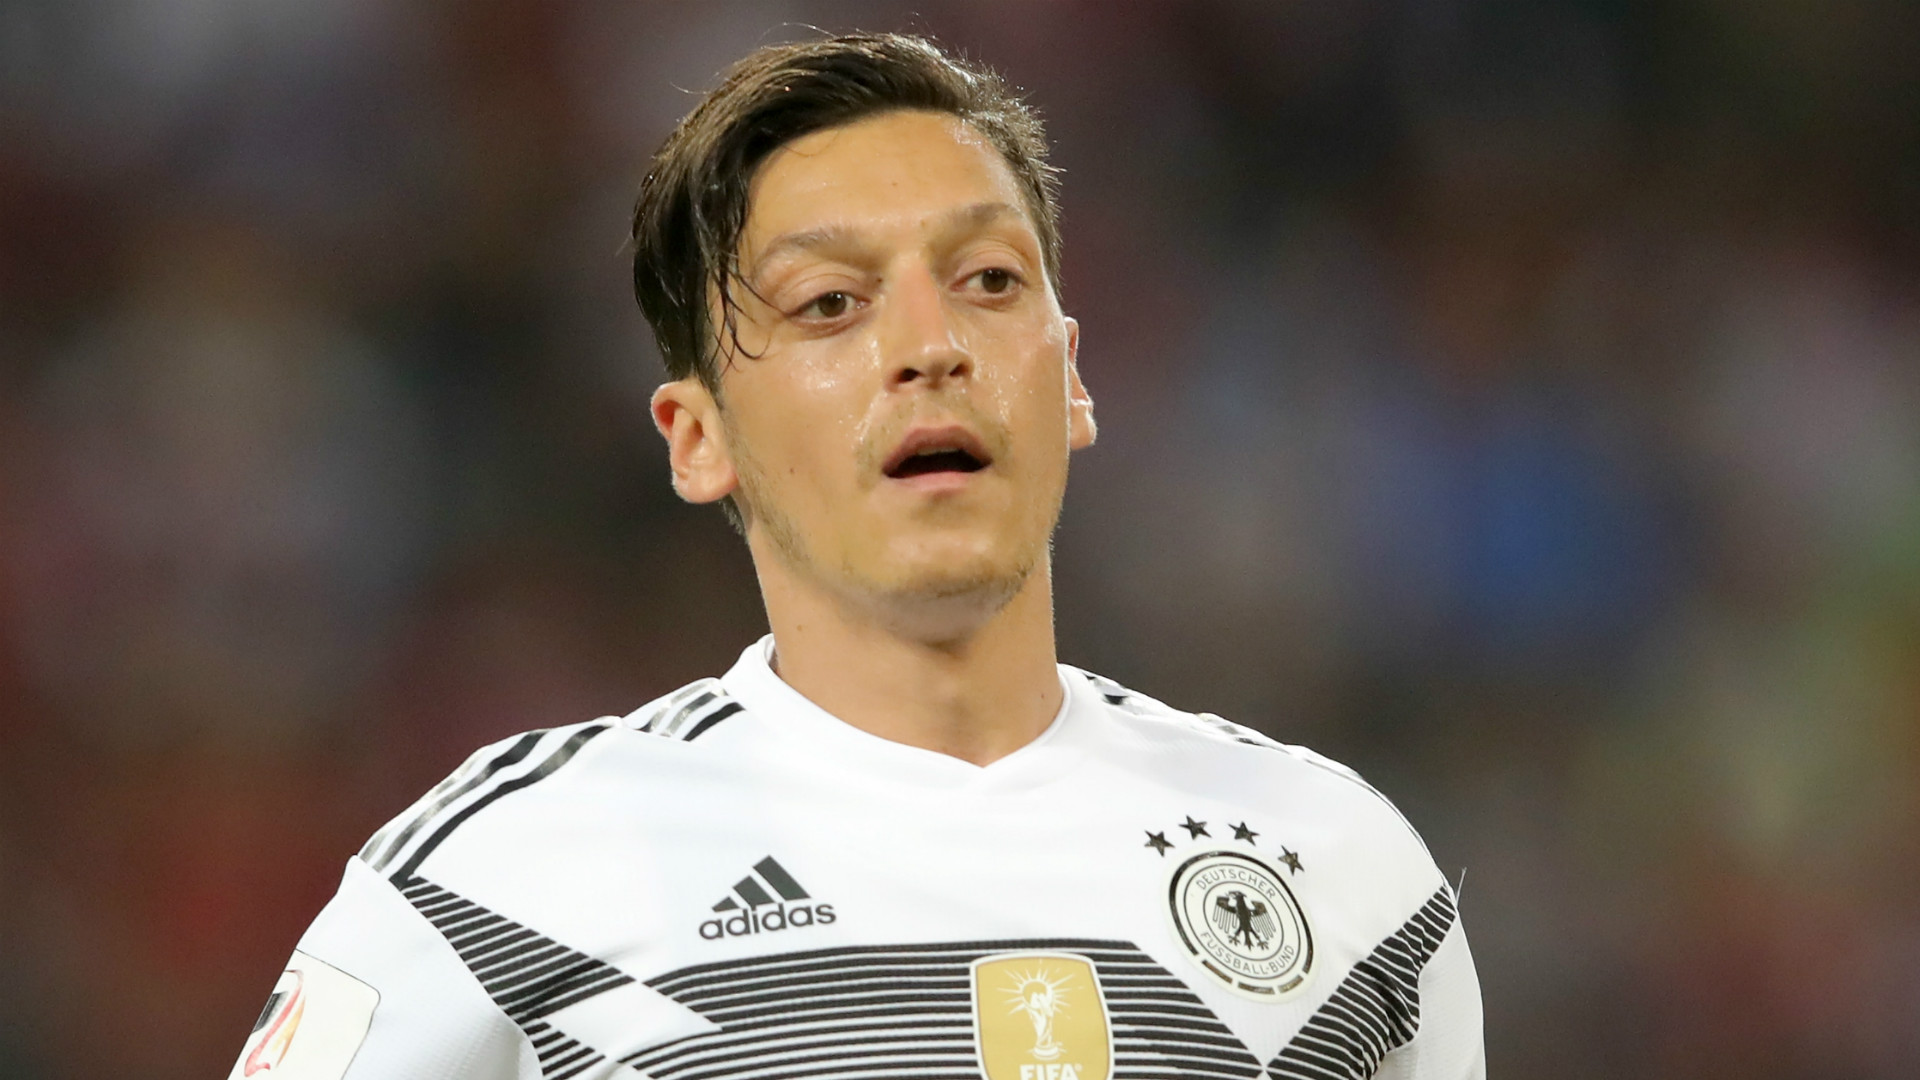 Manuel Neuer and Mesut Ozil fit for Germany's World Cup opener